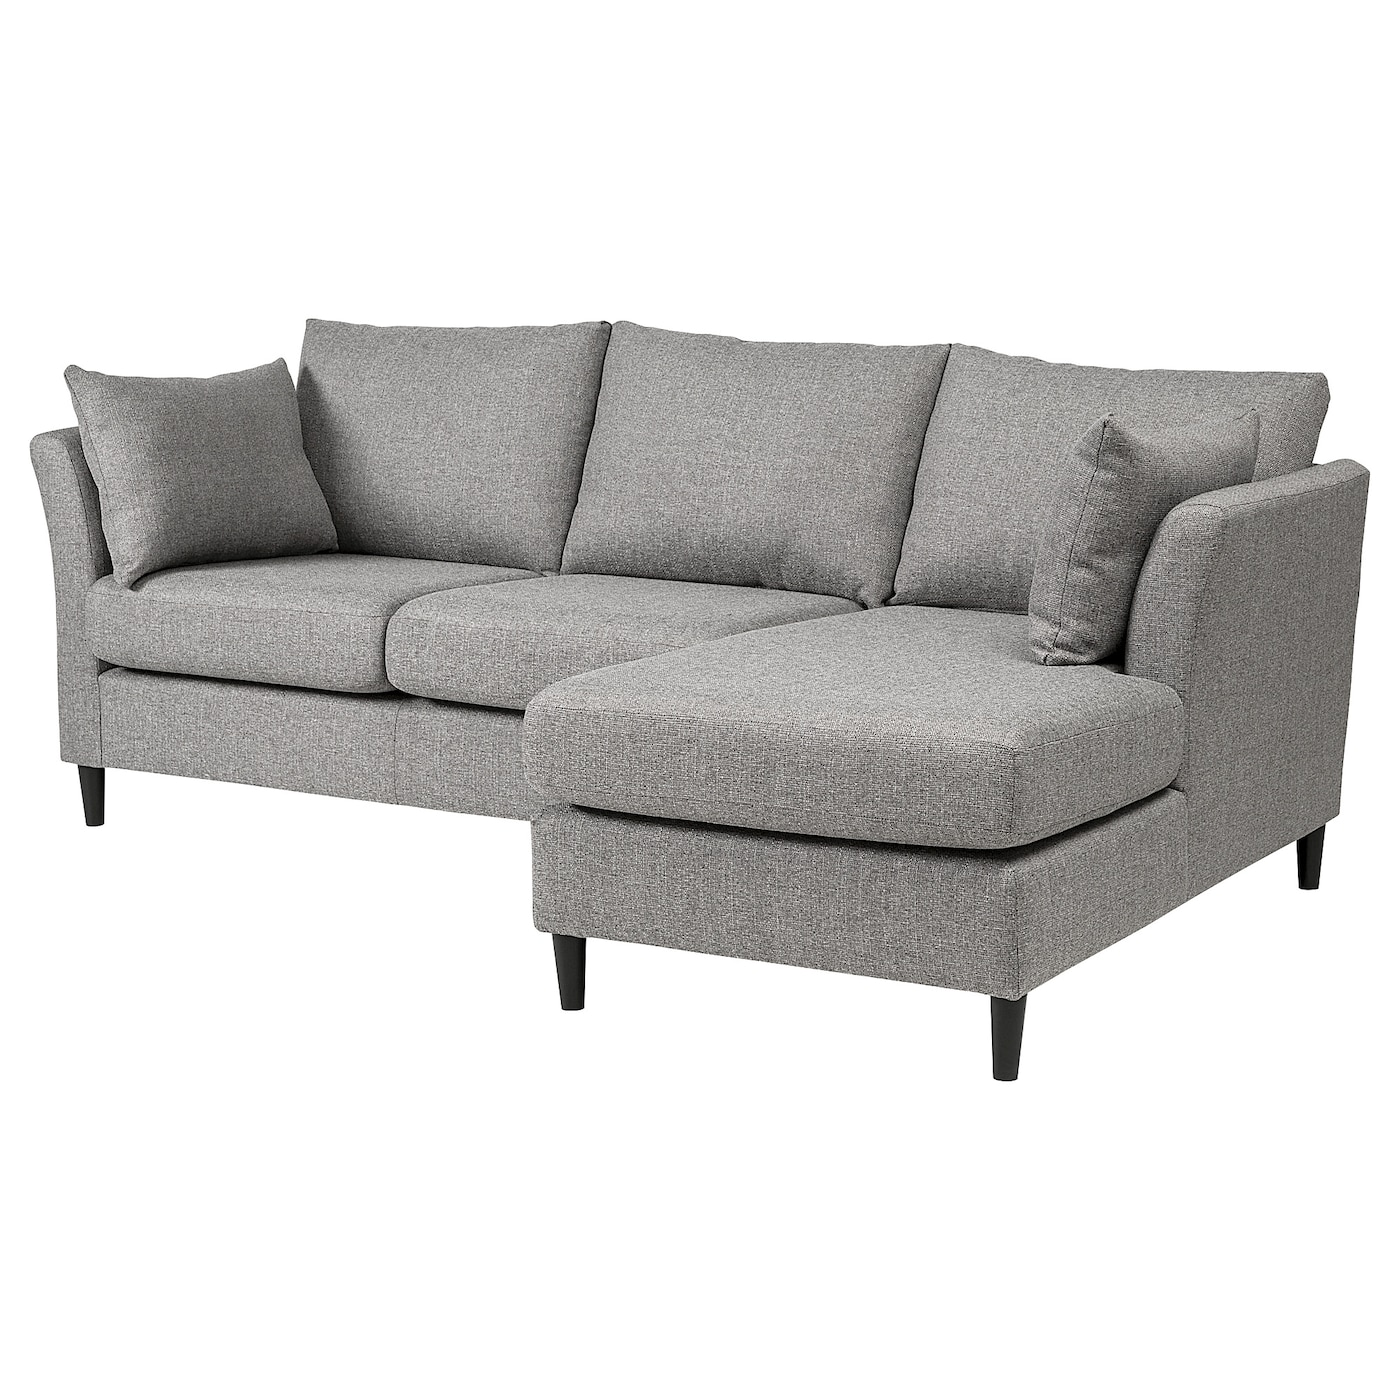 Bankeryd 2 seat sofa w chaise longue right grey ikea for 2 seat chaise sofa